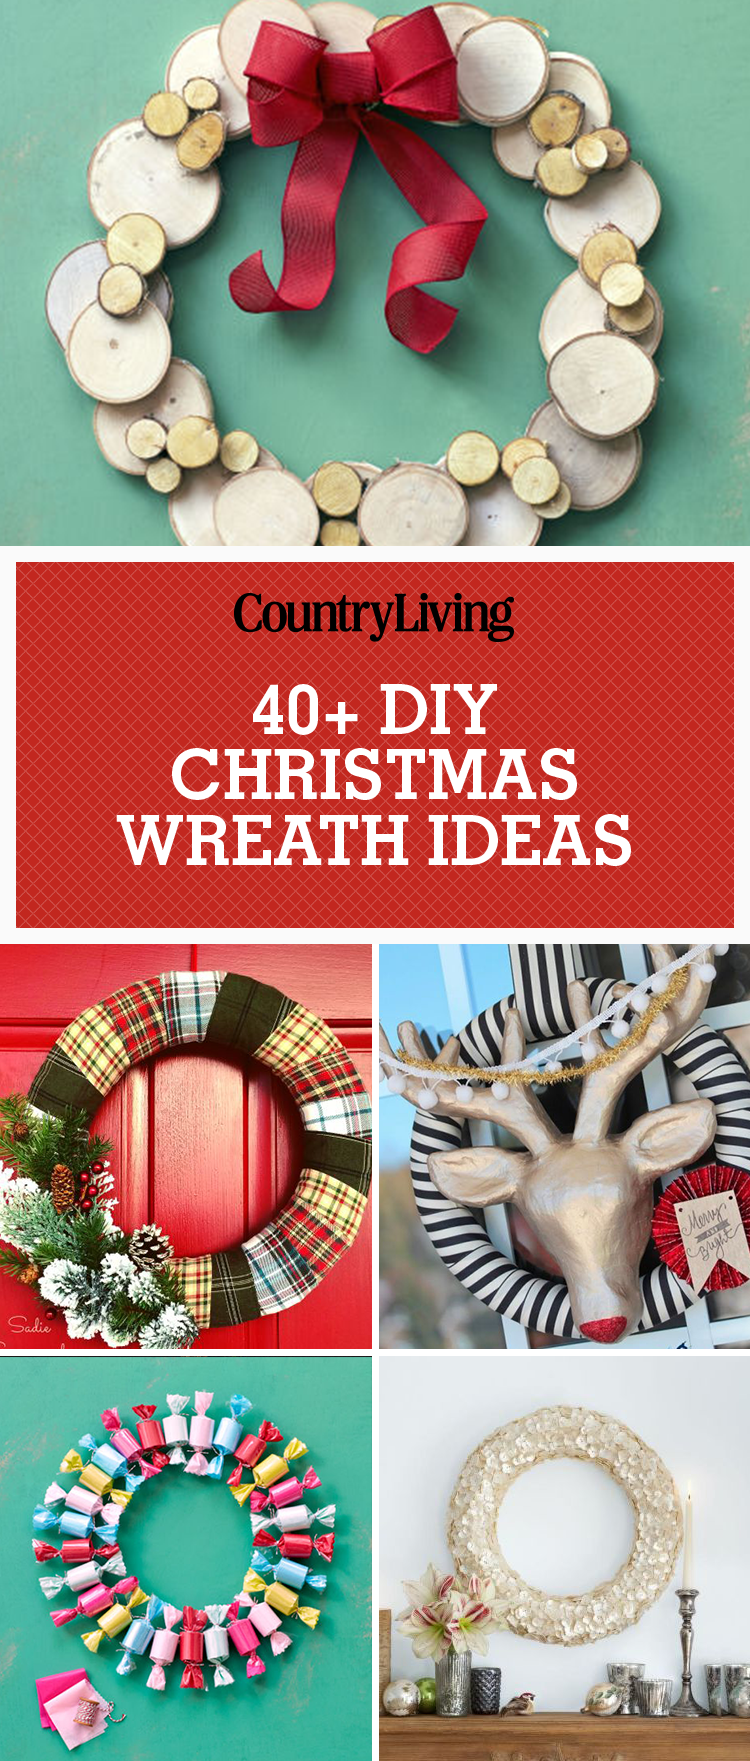 80 Diy Christmas Wreaths To Give Your Guests The Prettiest Welcome Christmas Wreaths Christmas Wreaths Diy Christmas Diy